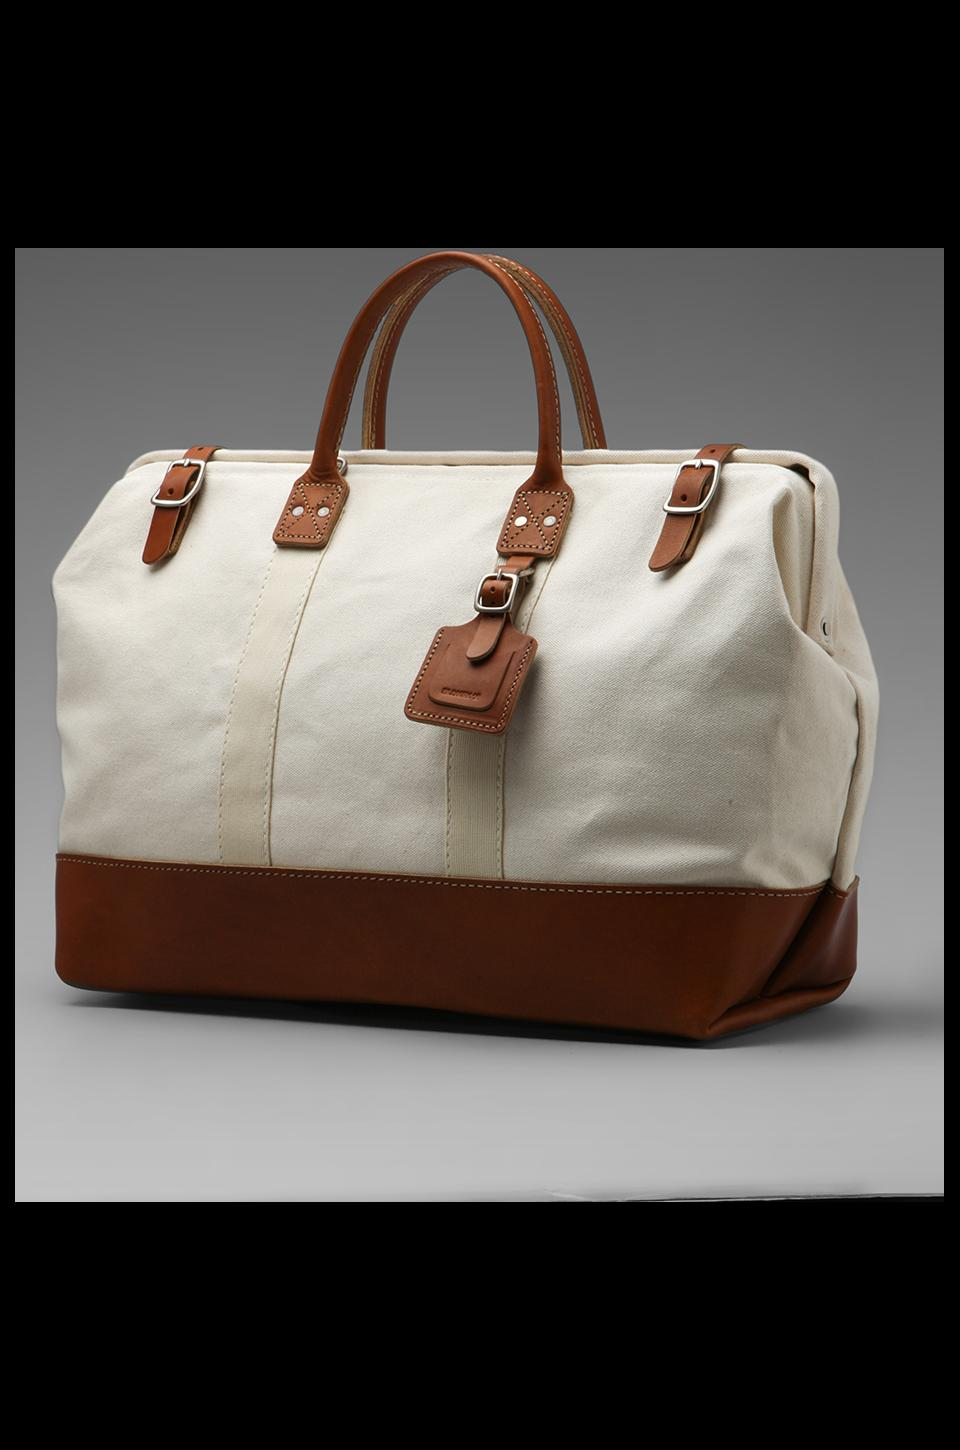 Billykirk No. 166 Large Carryall in Natural With Tan